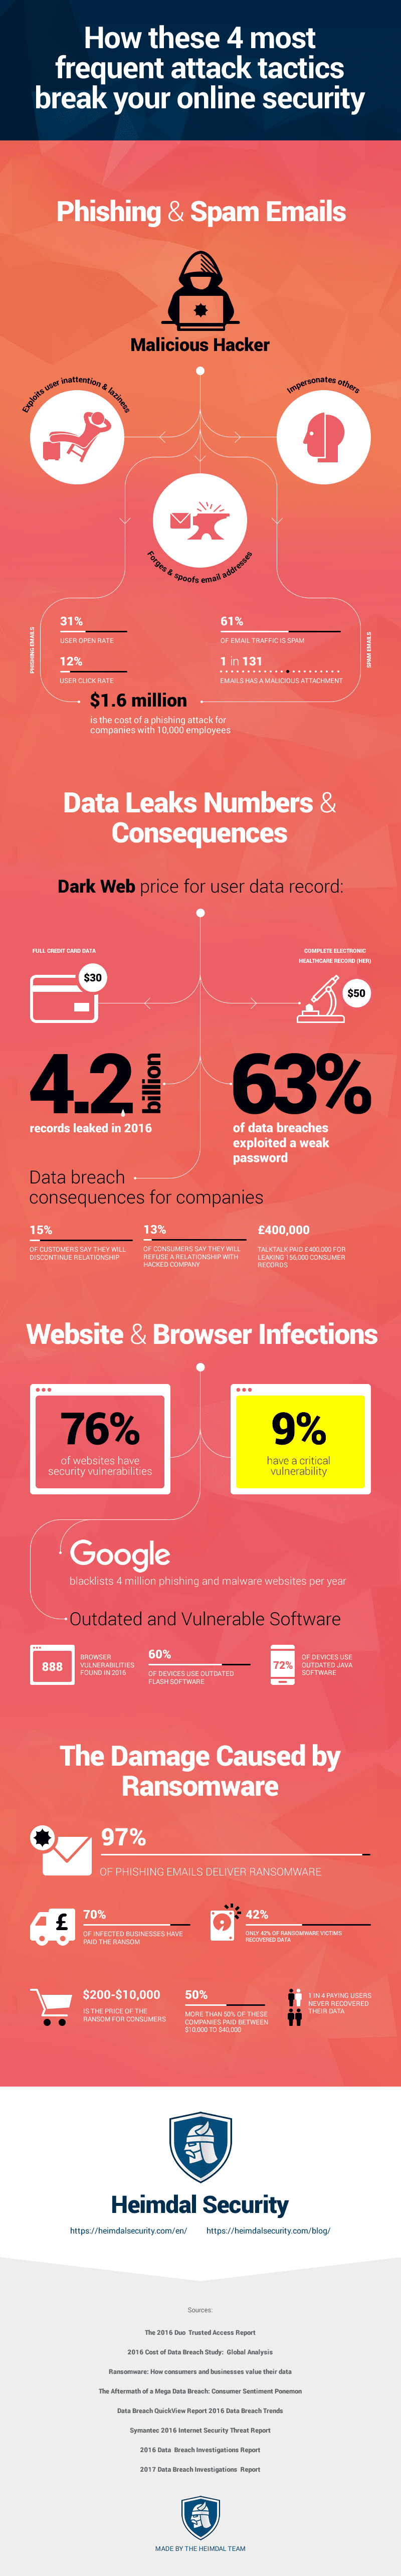 How 4 Types of Cyber Threats Break Your Online Security - #infographic